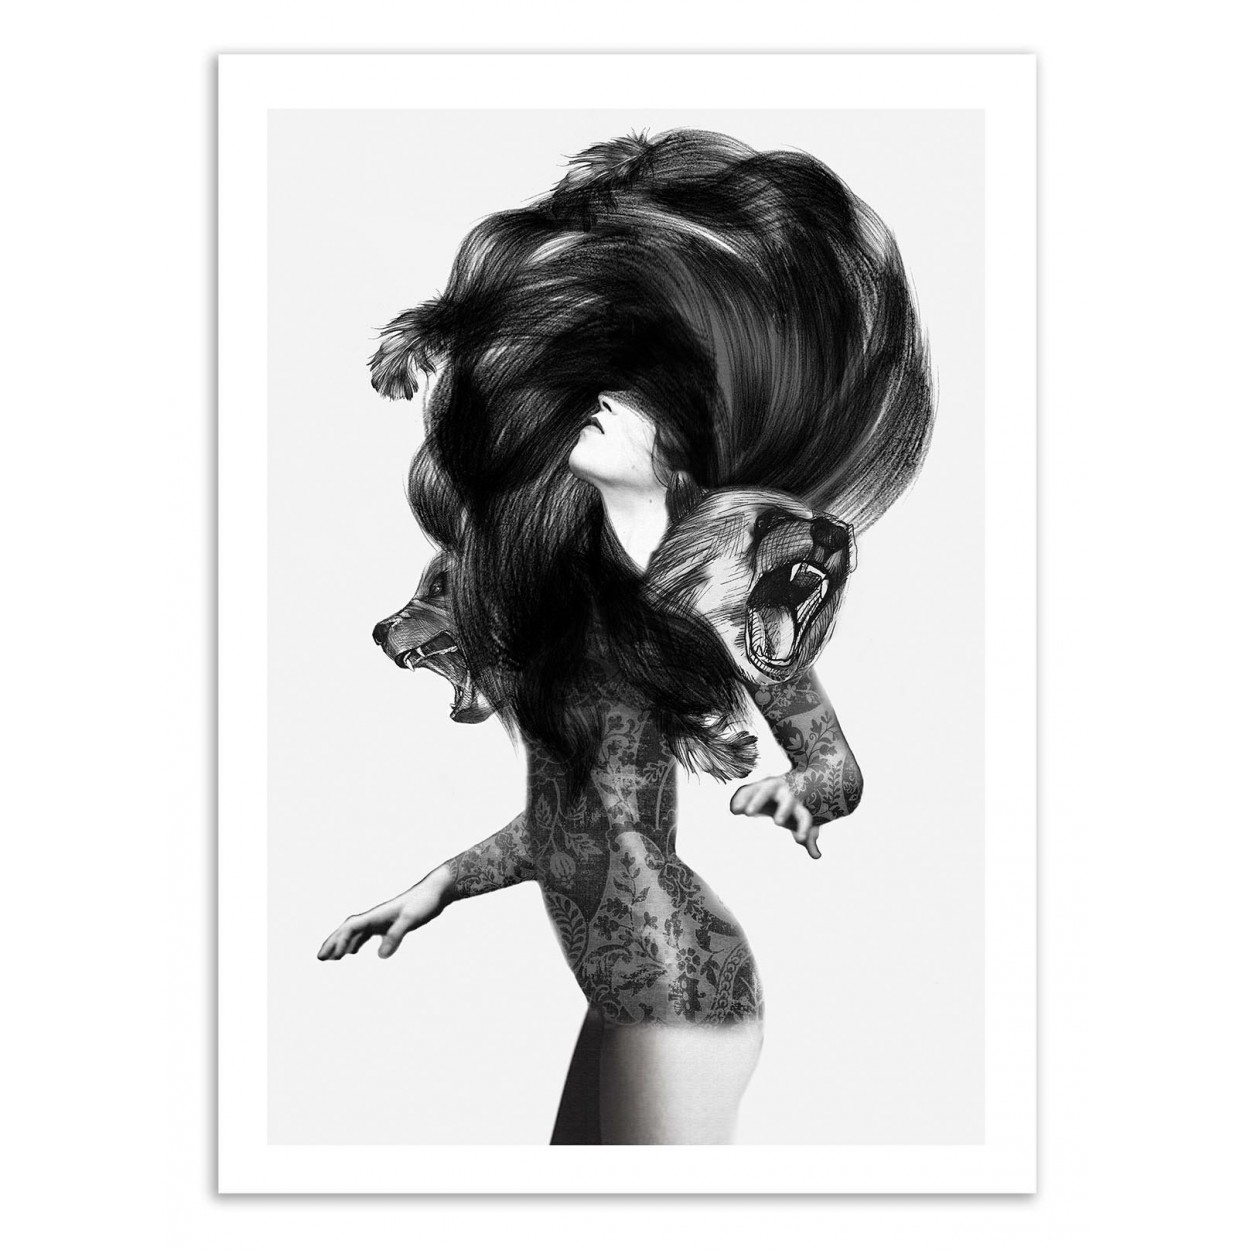 affiche d 39 art poster illustration dessin femme fille noir et blanc. Black Bedroom Furniture Sets. Home Design Ideas